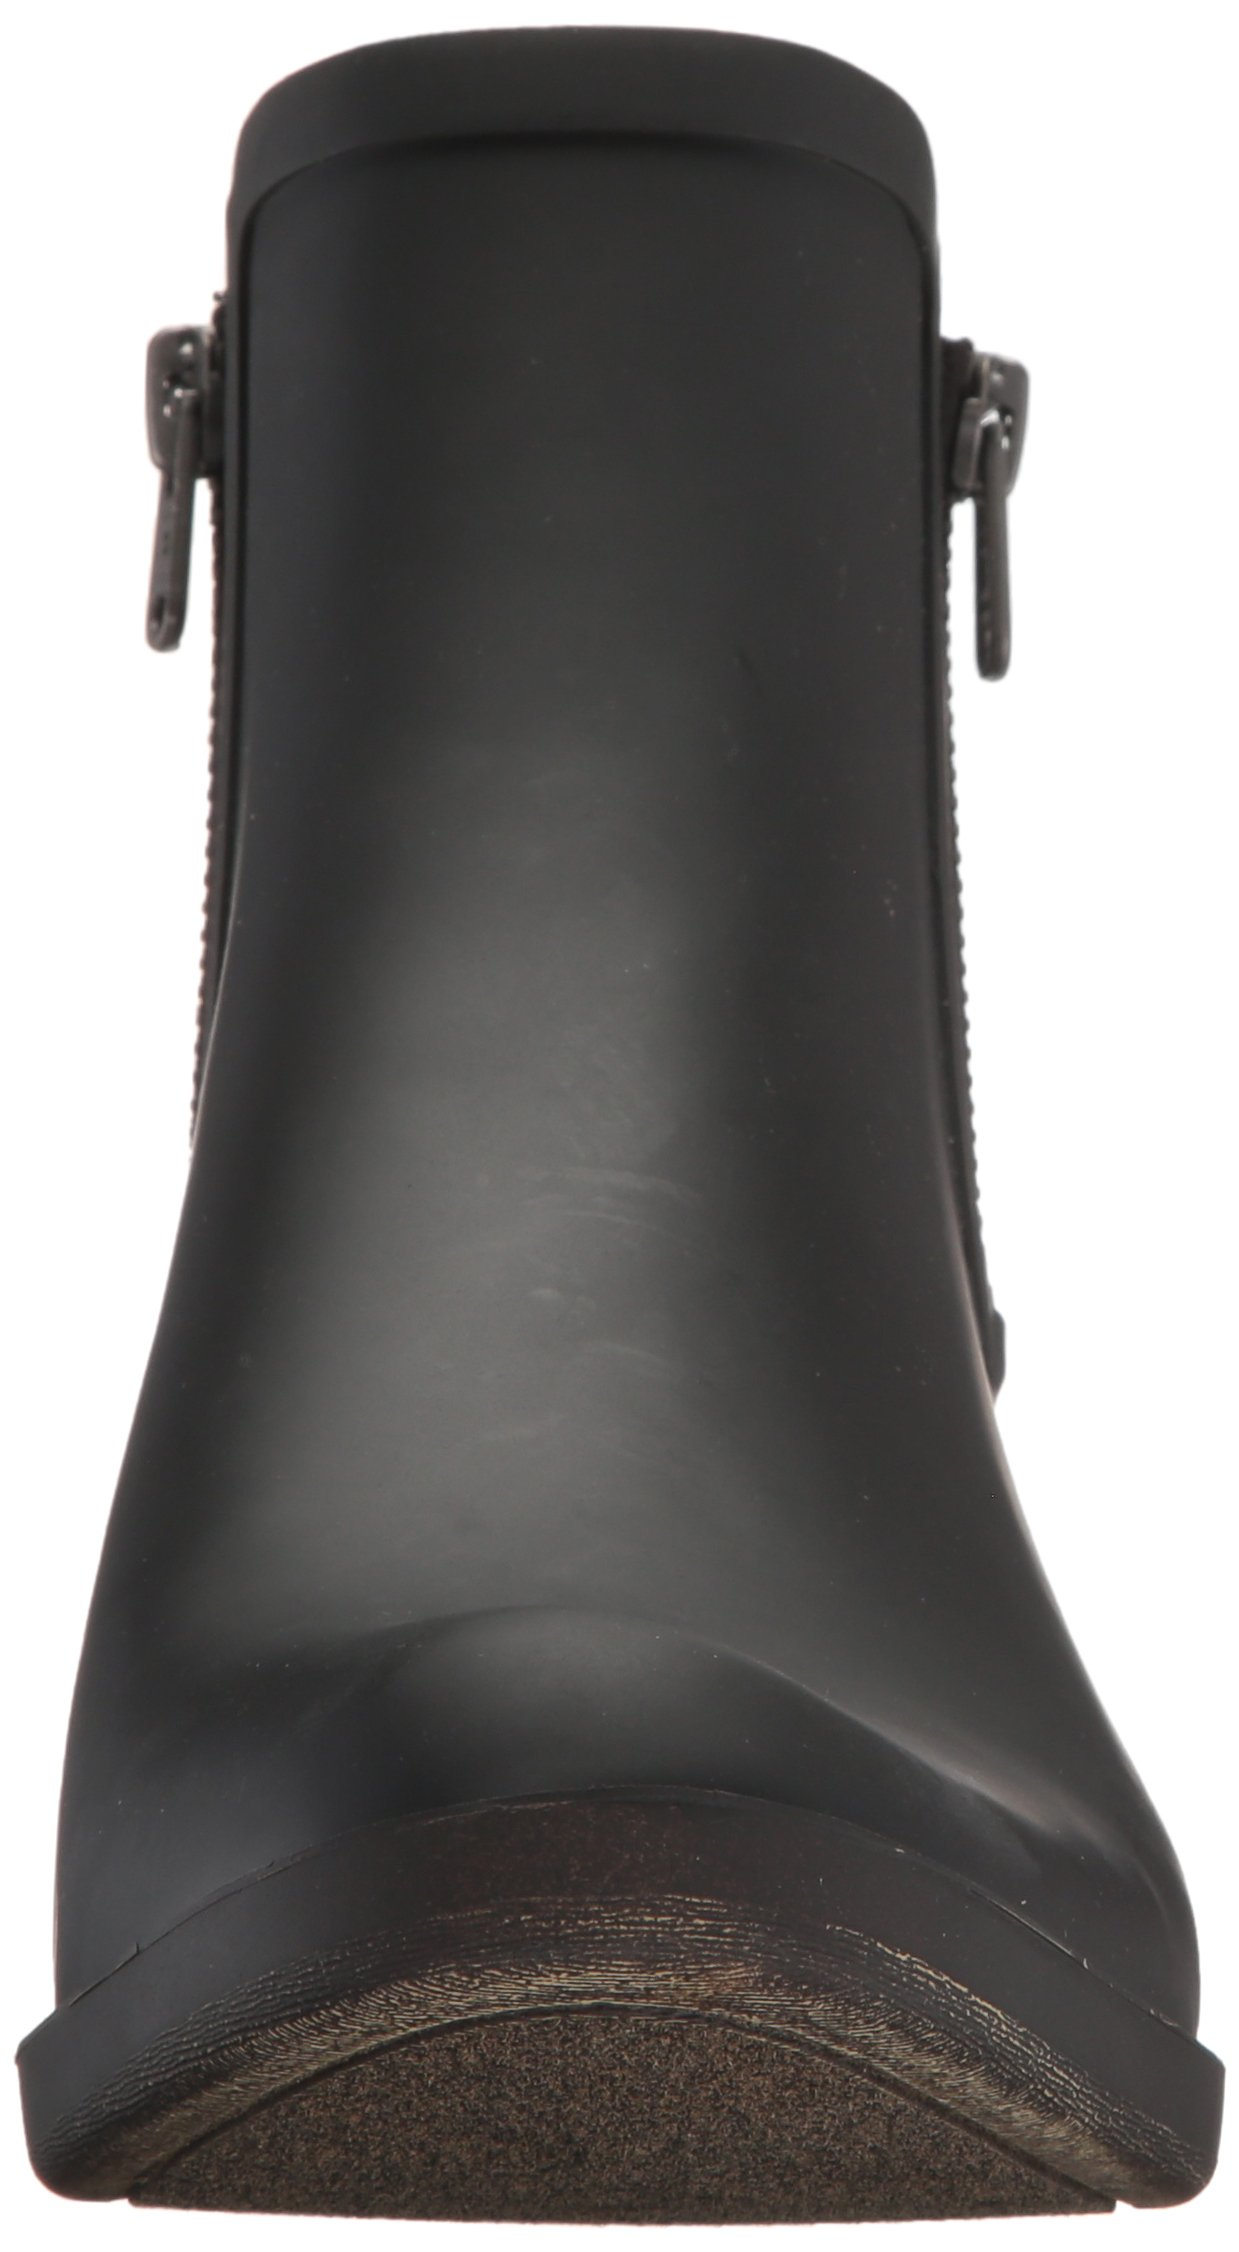 Lucky Brand Women's Baselrain Rain Boot, Black Crocodile, 10 Medium US by Lucky Brand (Image #4)